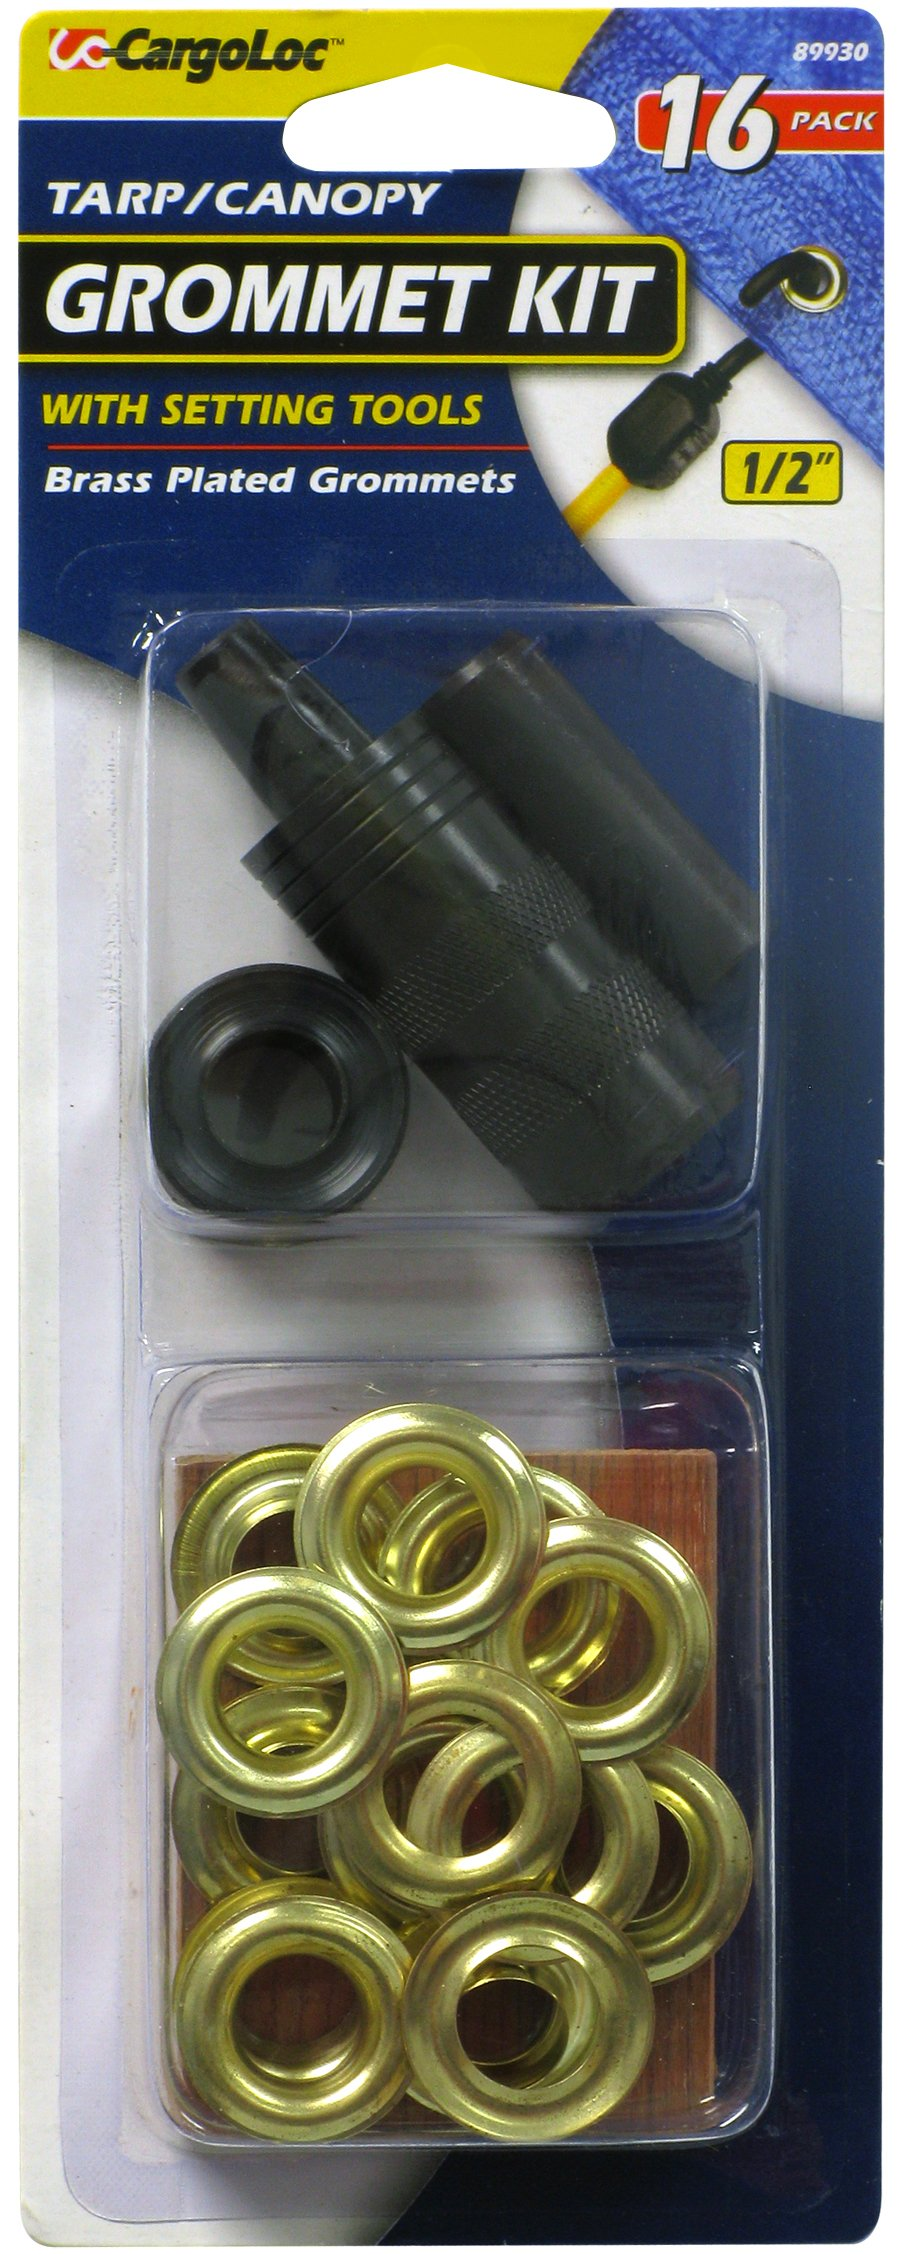 CargoLoc 89930 16 Pc. 1/2'' Grommet Kit and Tools, Brass Plated Steel